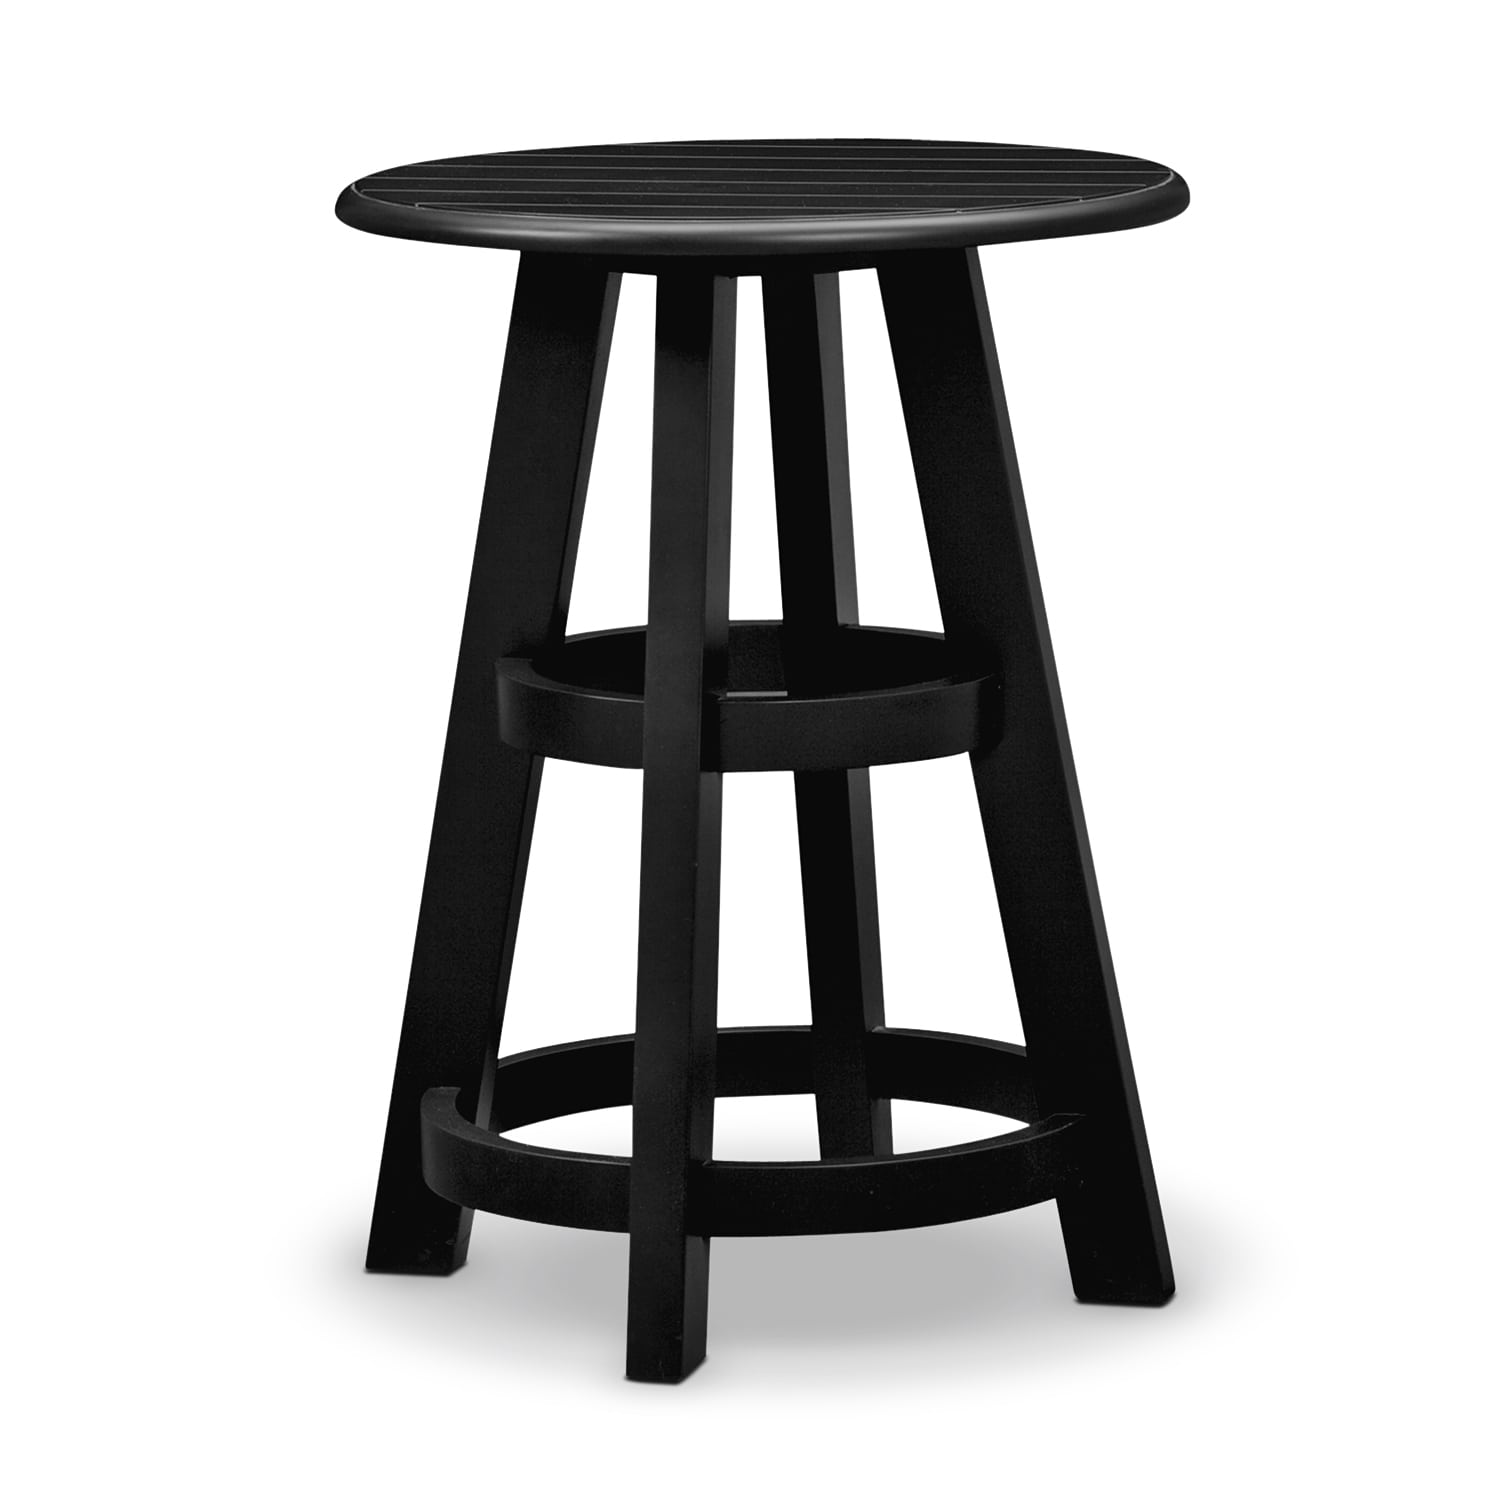 chair side book stand computer floor mat plantation cove coastal chairside table black value